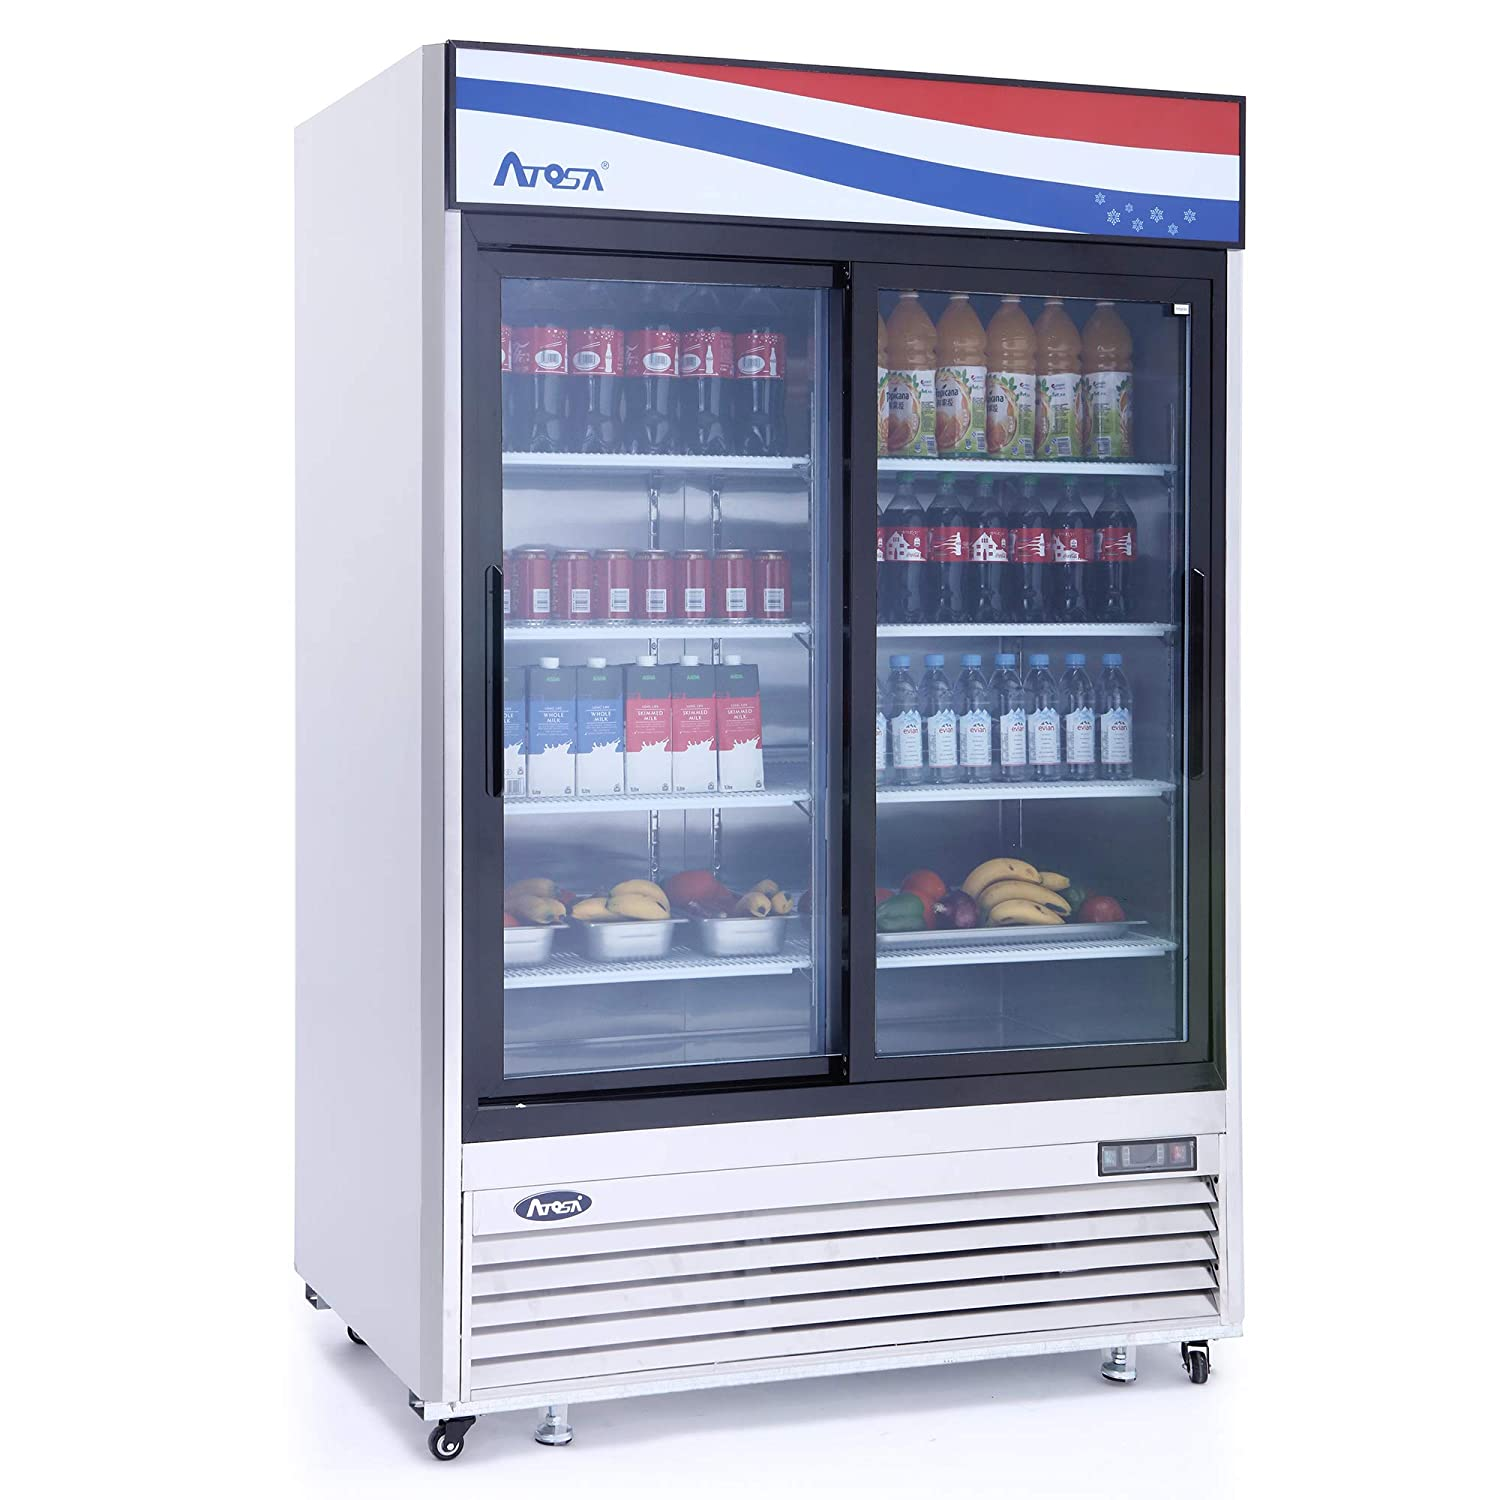 Glass Door Refrigerator, Bottom Mount Stainless Steel 2 Sliding Doors with LED Lighting, ATOSA MCF8709